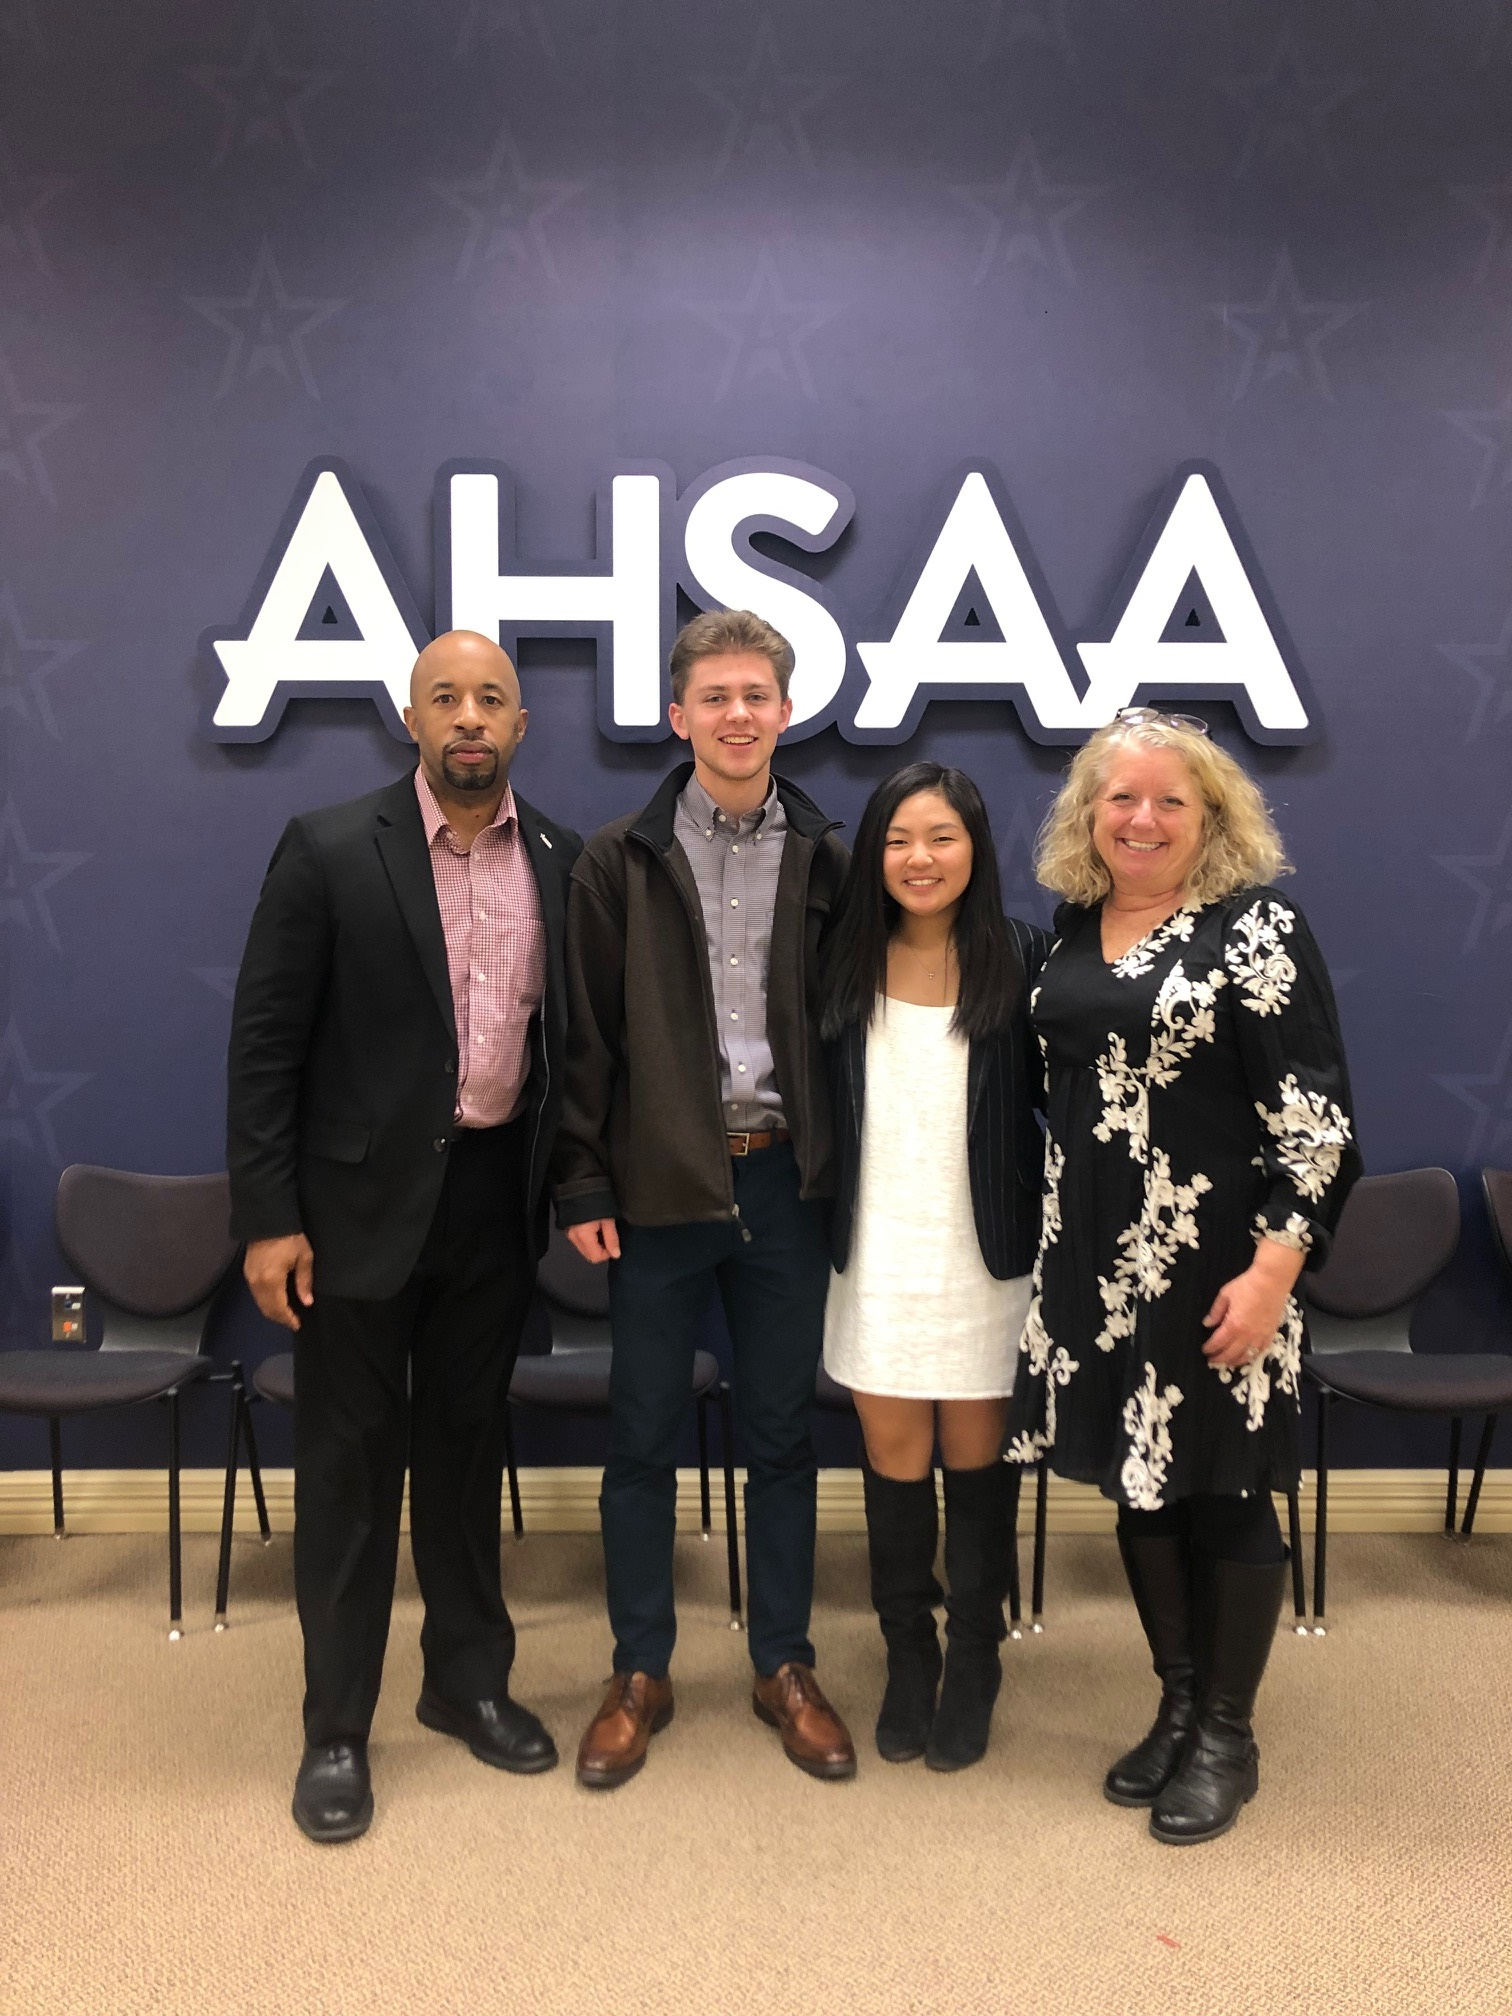 Ji Soo Kim and Isaac Stubbs selected to represent the AHSAA at the NFHS Student Leadership Summit in Indianapolis July 22-24.